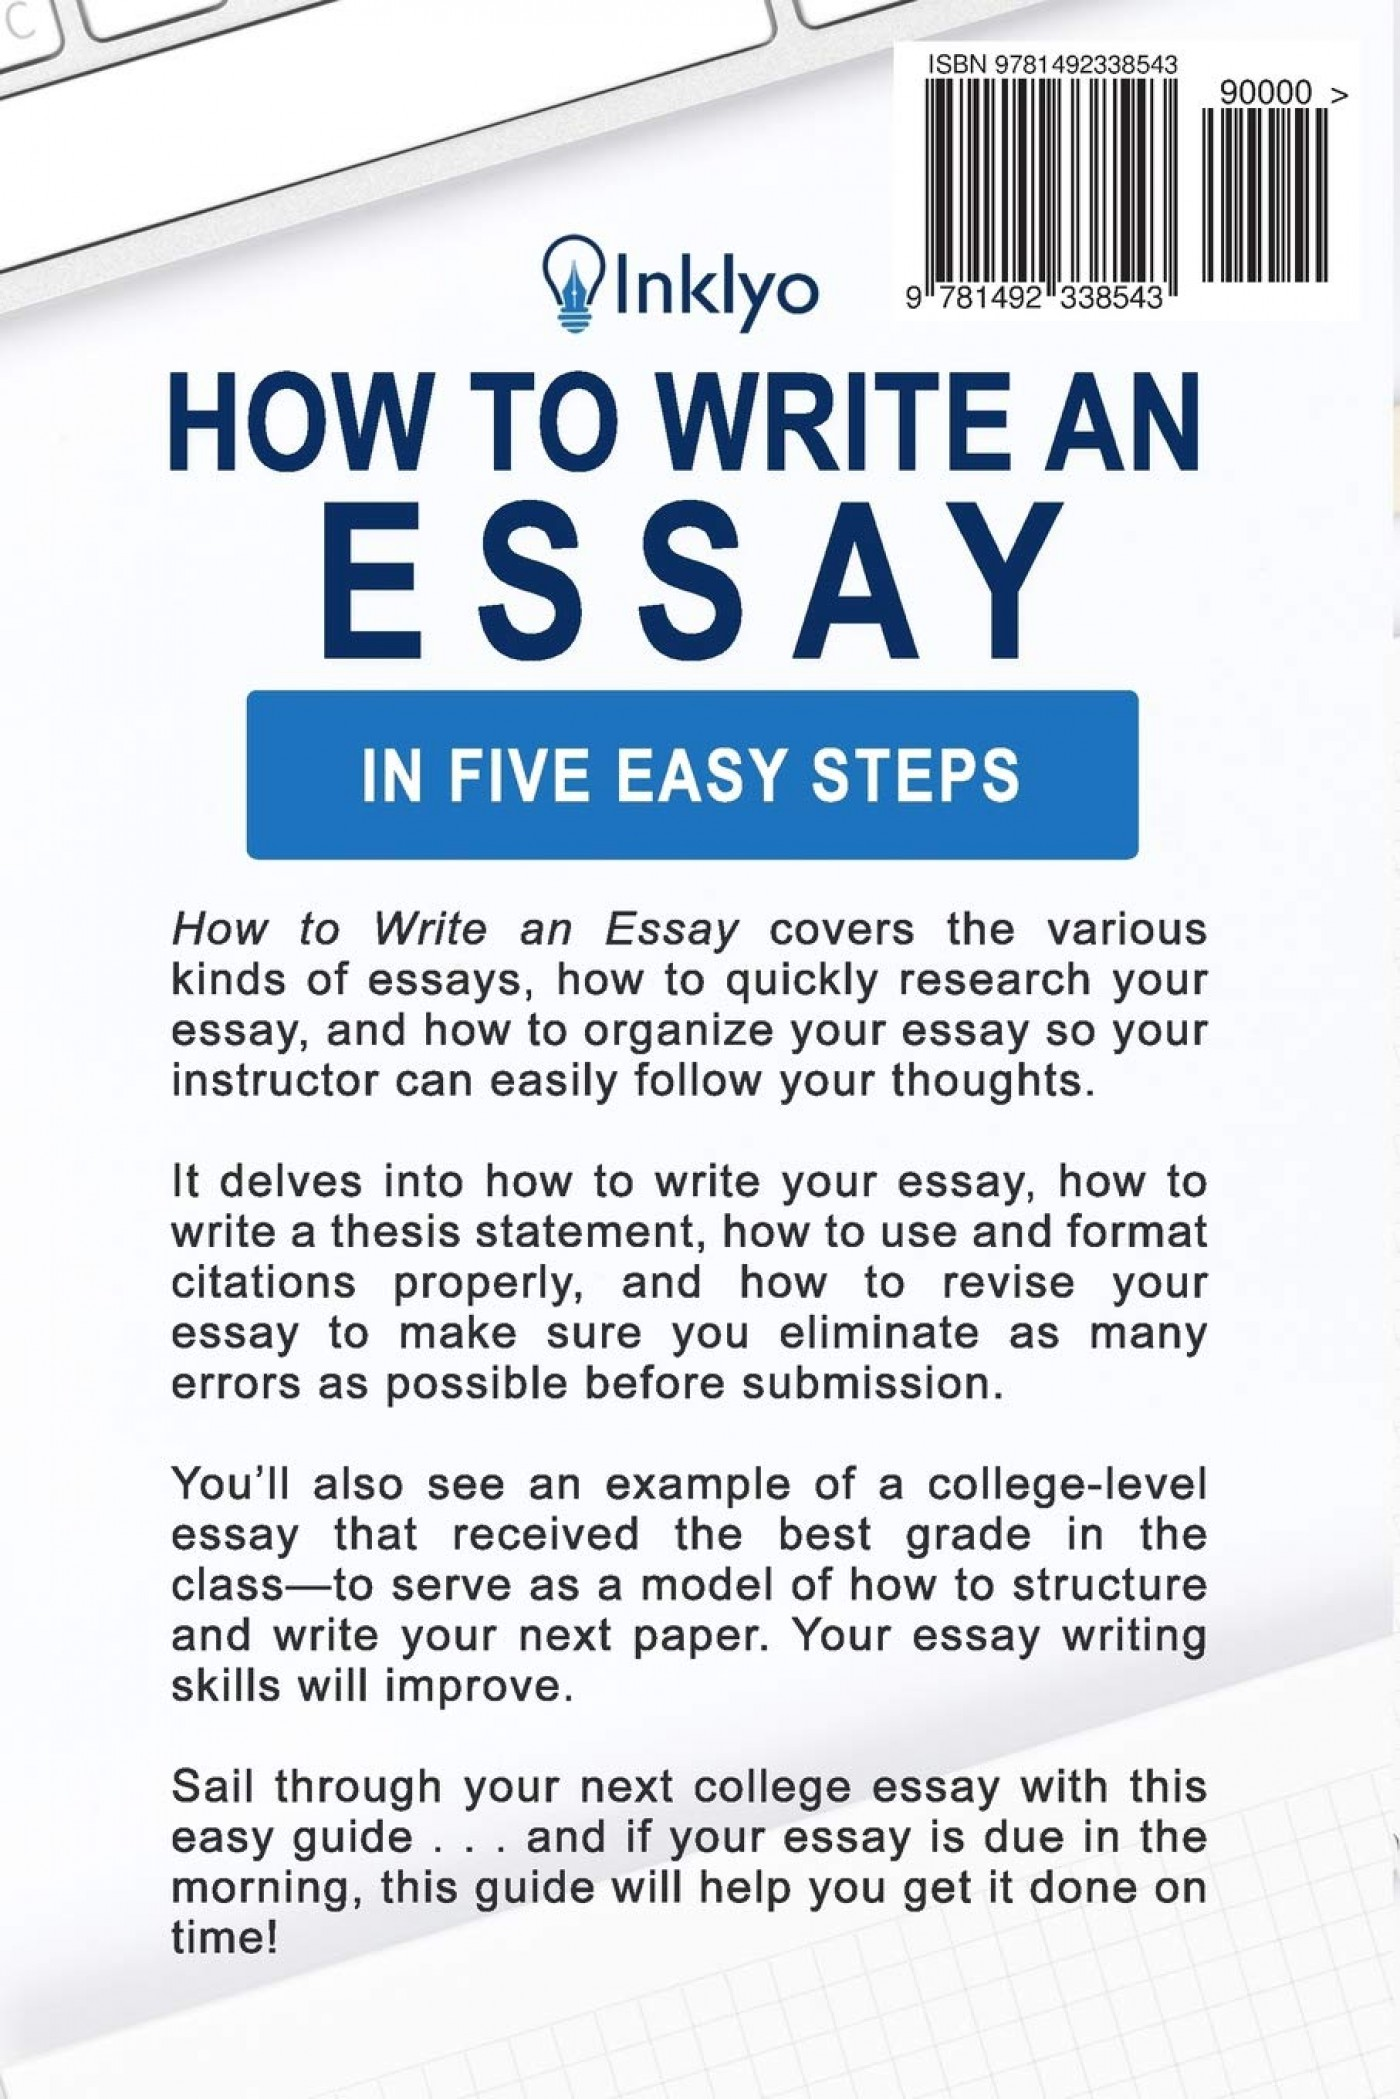 002 How To Write An Essay Example Shocking In Mla Format Word 2013 About Yourself For College Application 1400